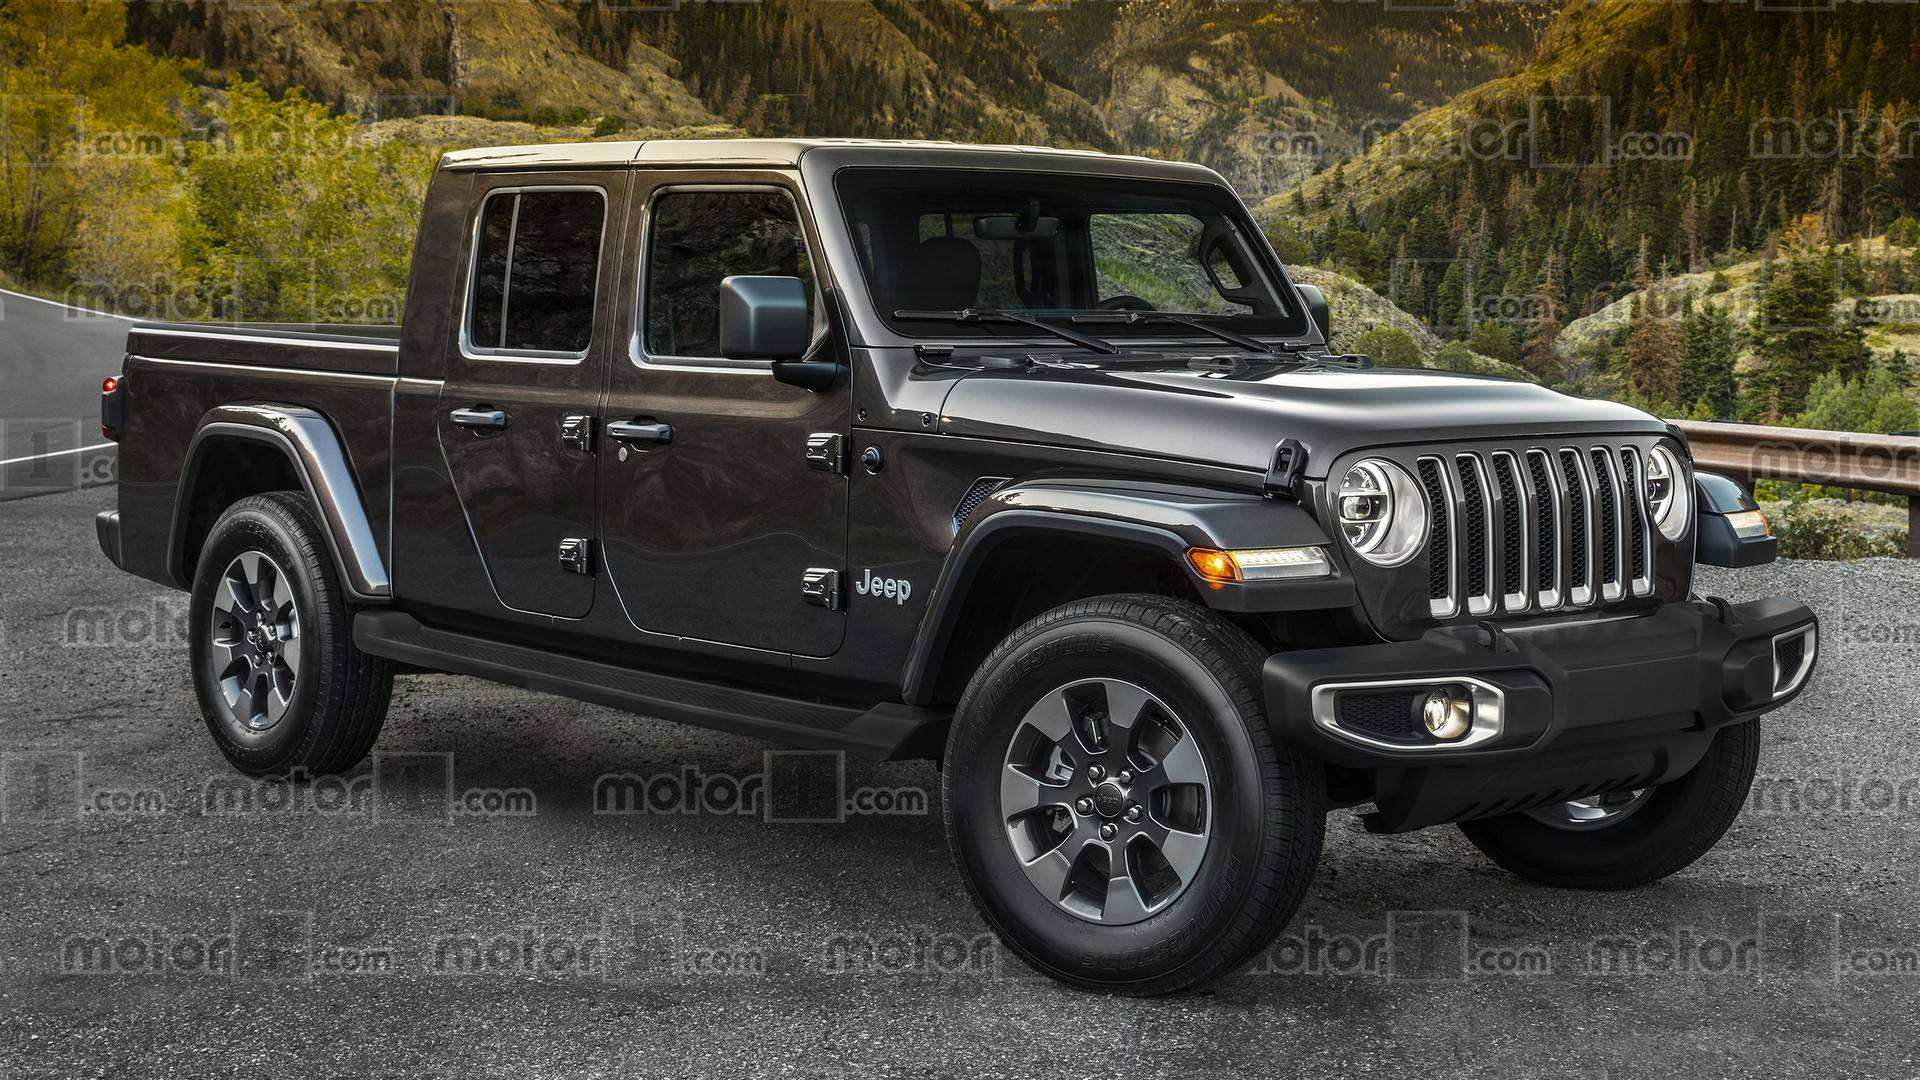 71 New 2019 Jeep Truck News Prices by 2019 Jeep Truck News